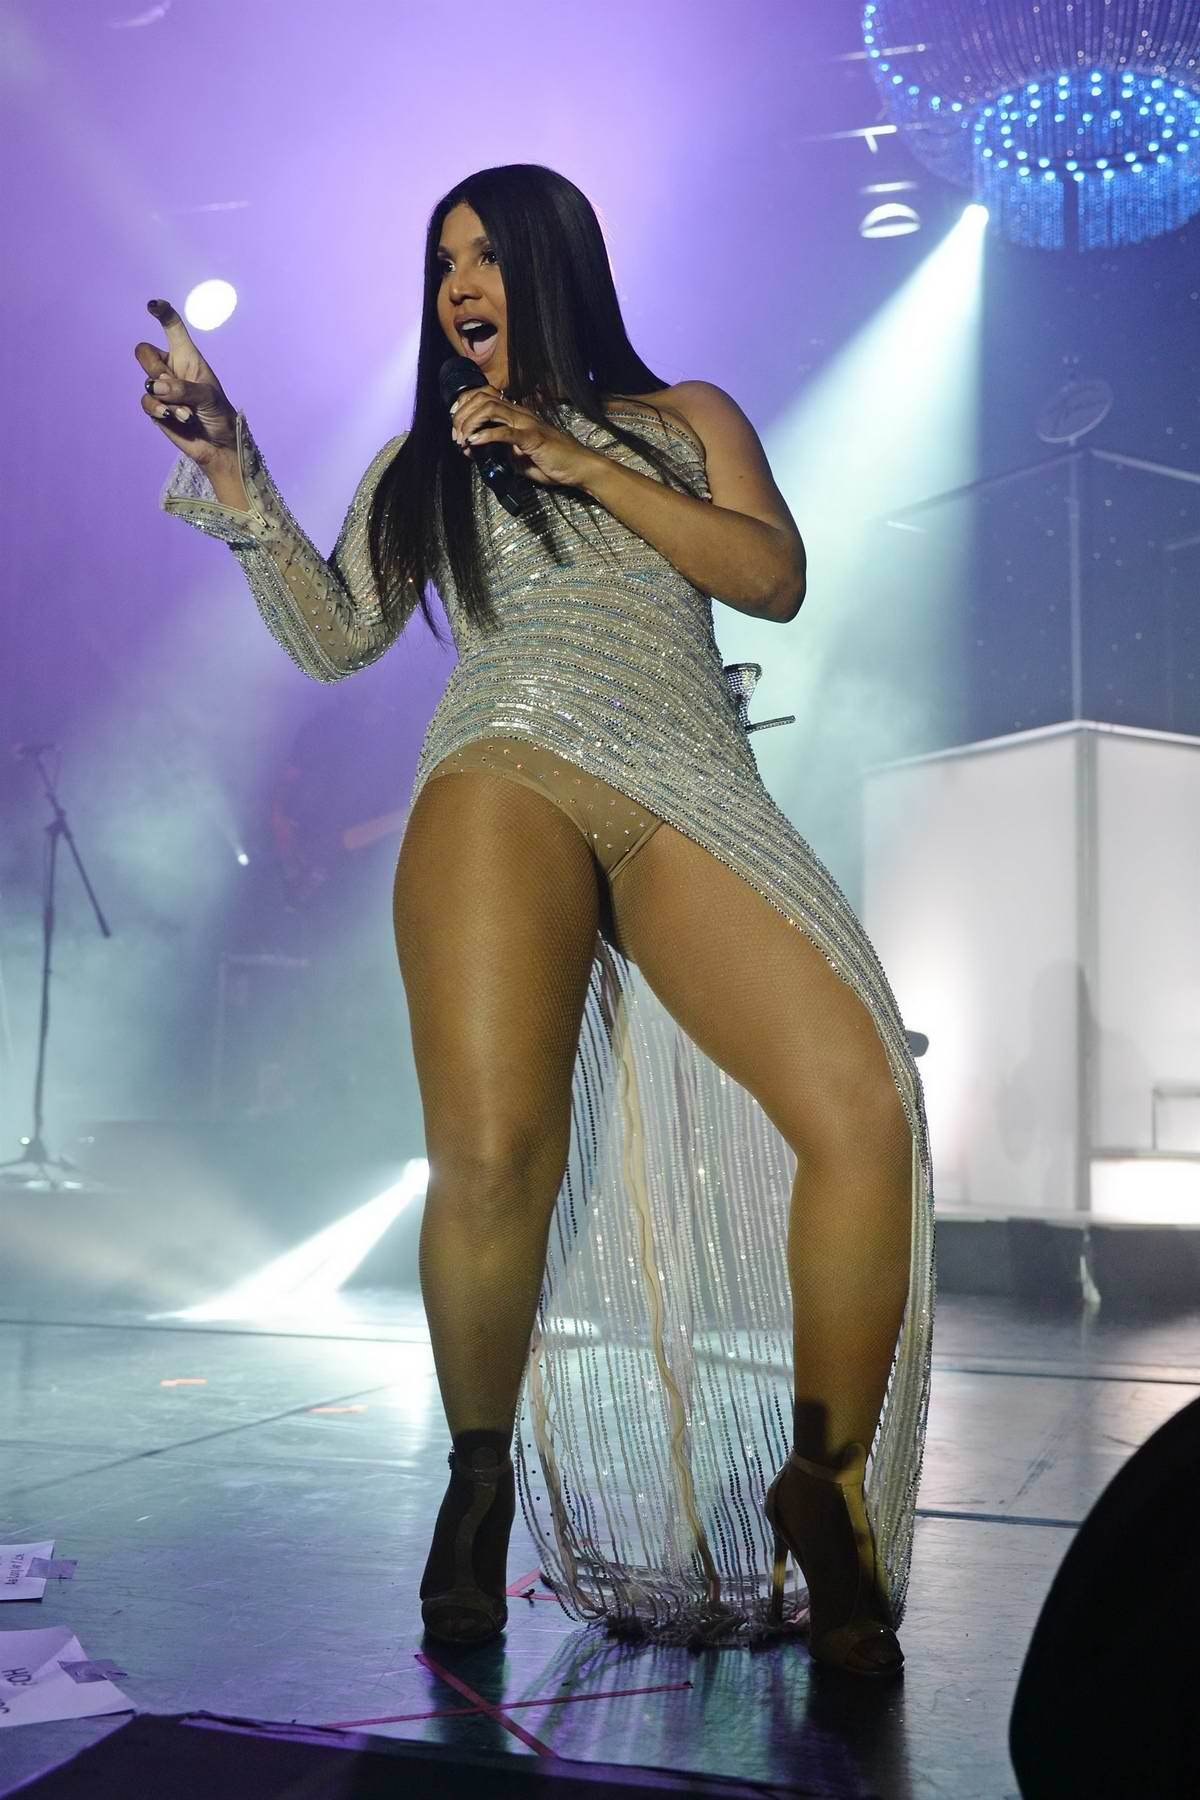 Toni Braxton performs at the Hard Rock Events Center held at the Seminole Hard Rock Hotel & Casino in Hollywood, Florida